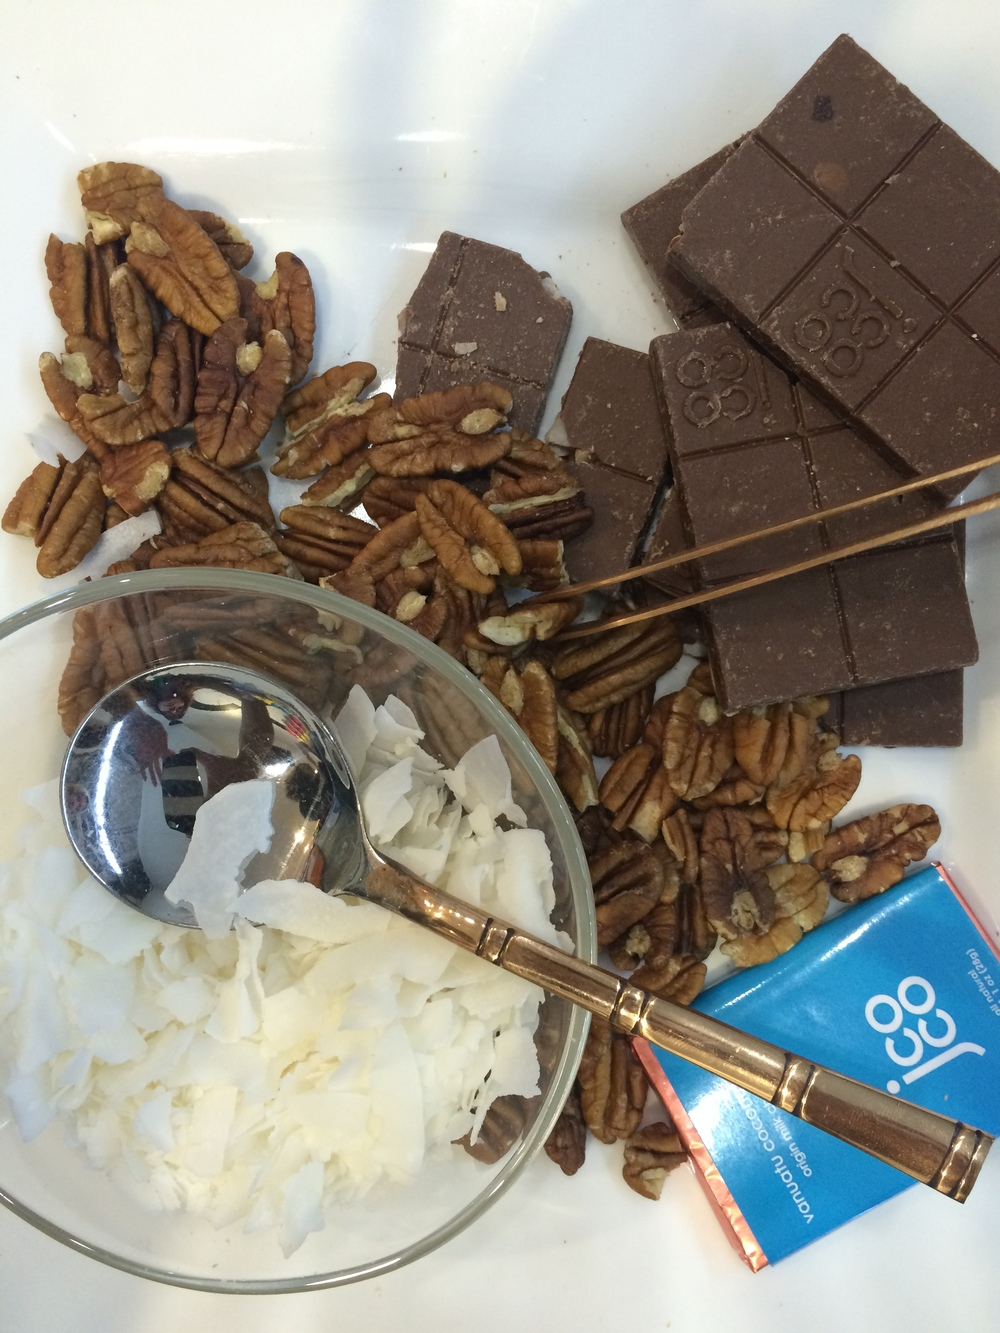 The Vanuatu bar deconstructed during our tasting.